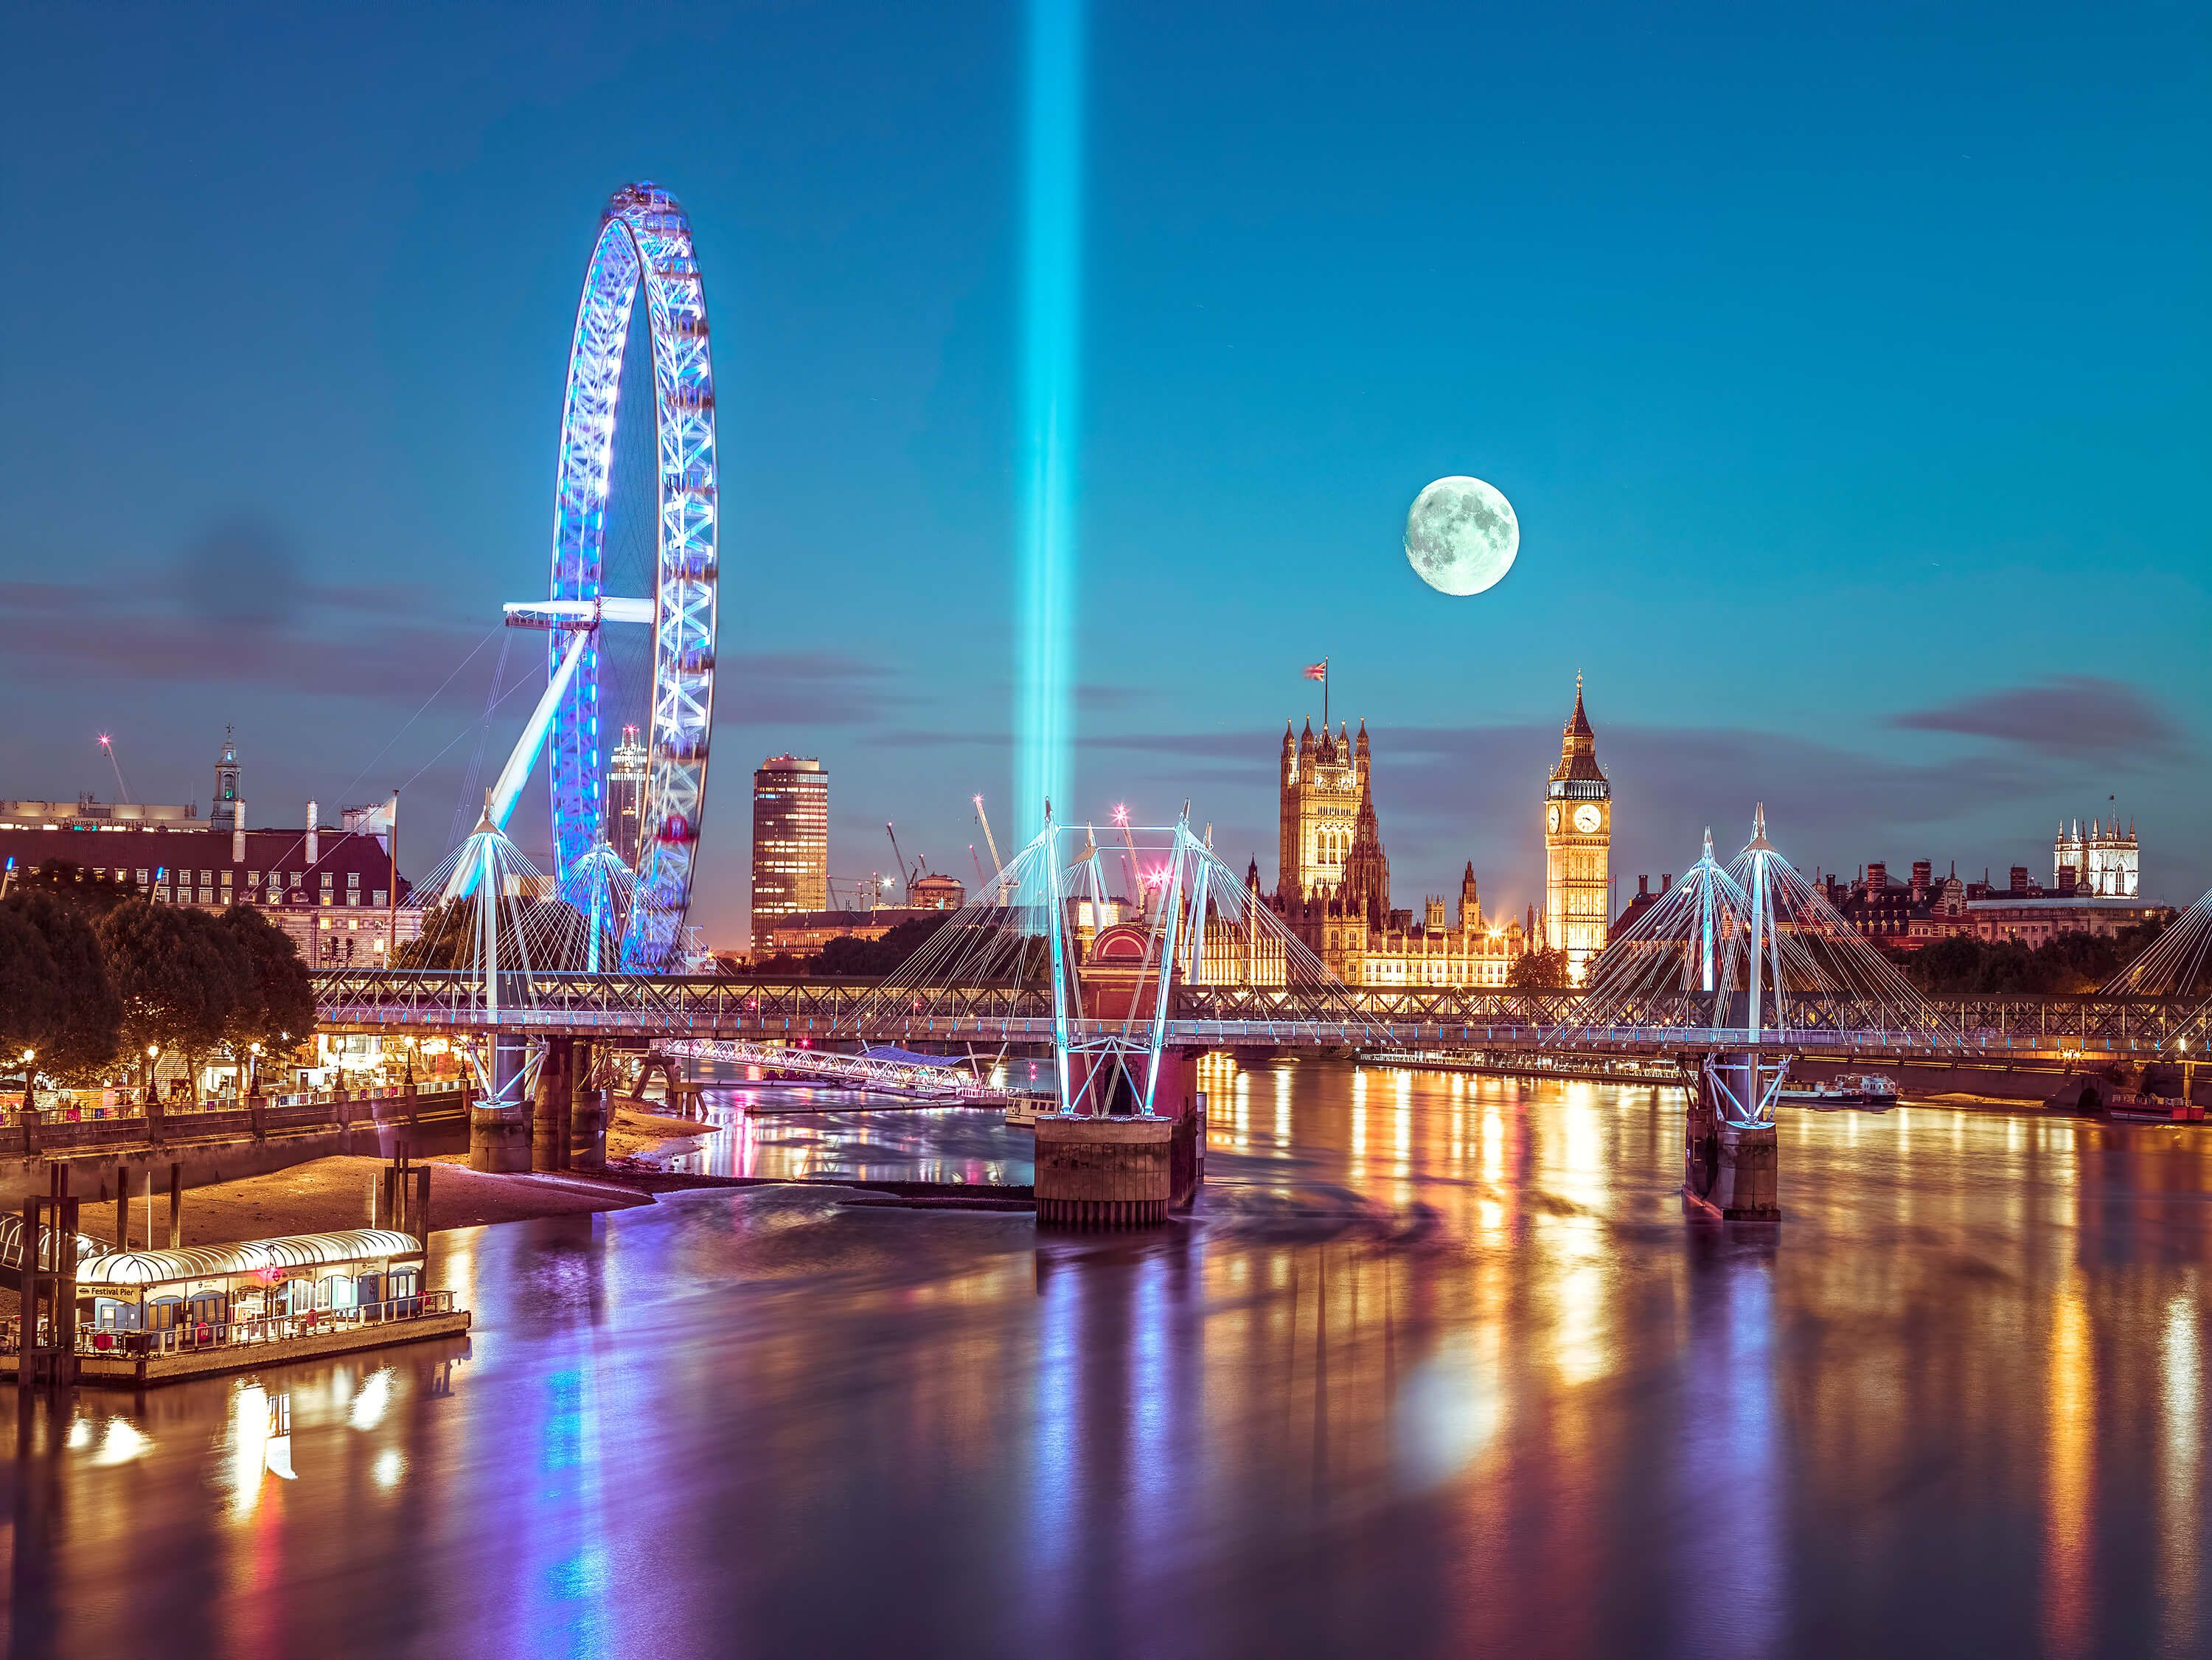 Westminster at Full Moon